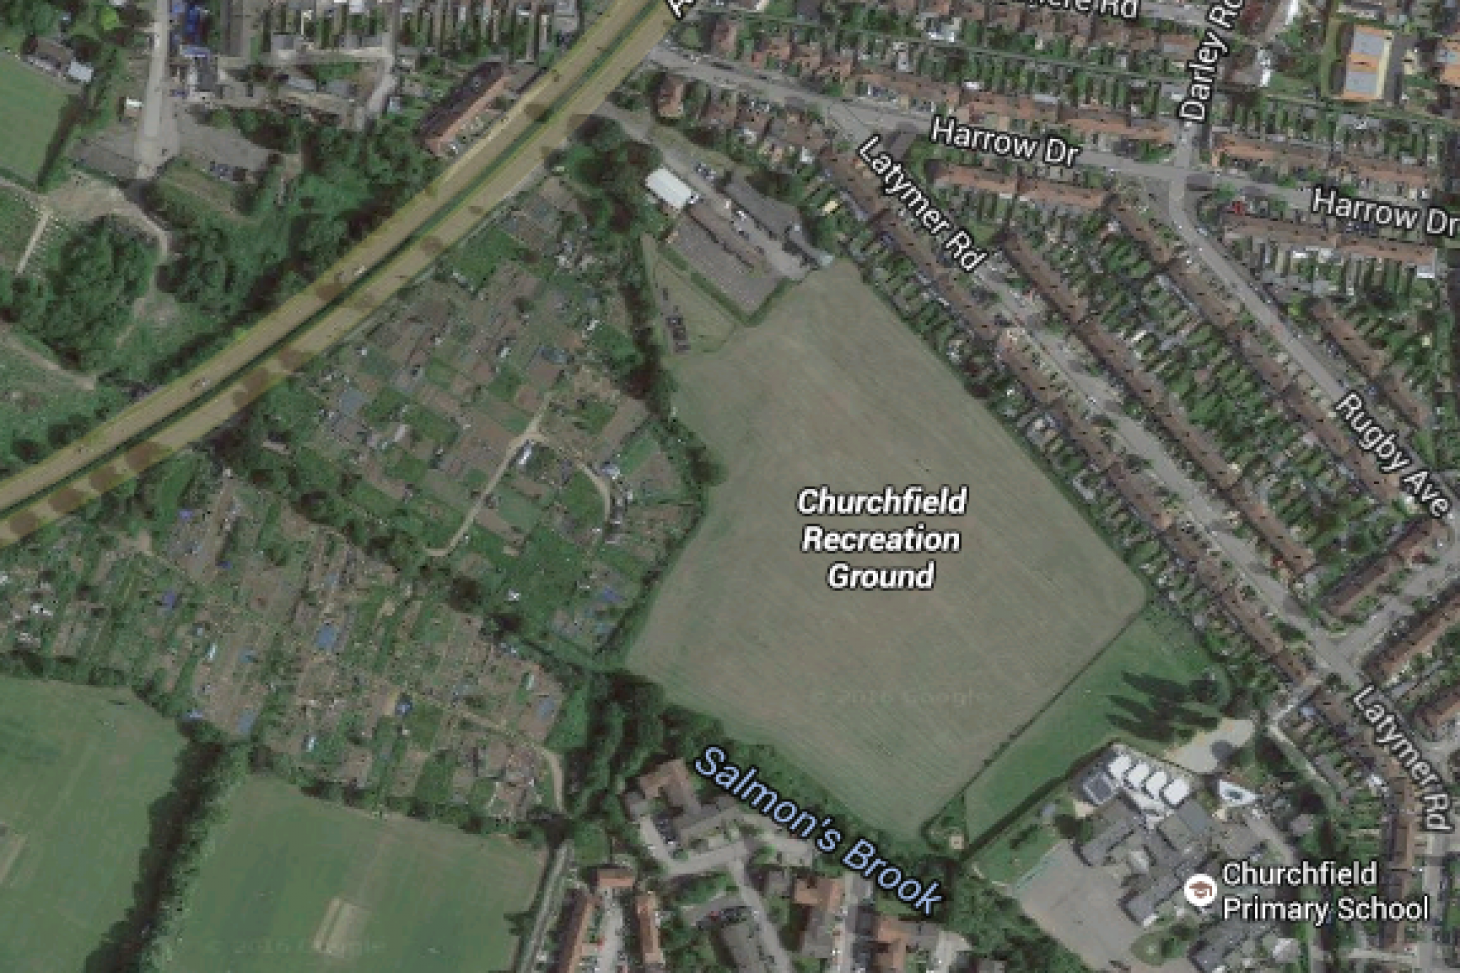 Churchfields Recreation Ground 11 a side | Grass football pitch